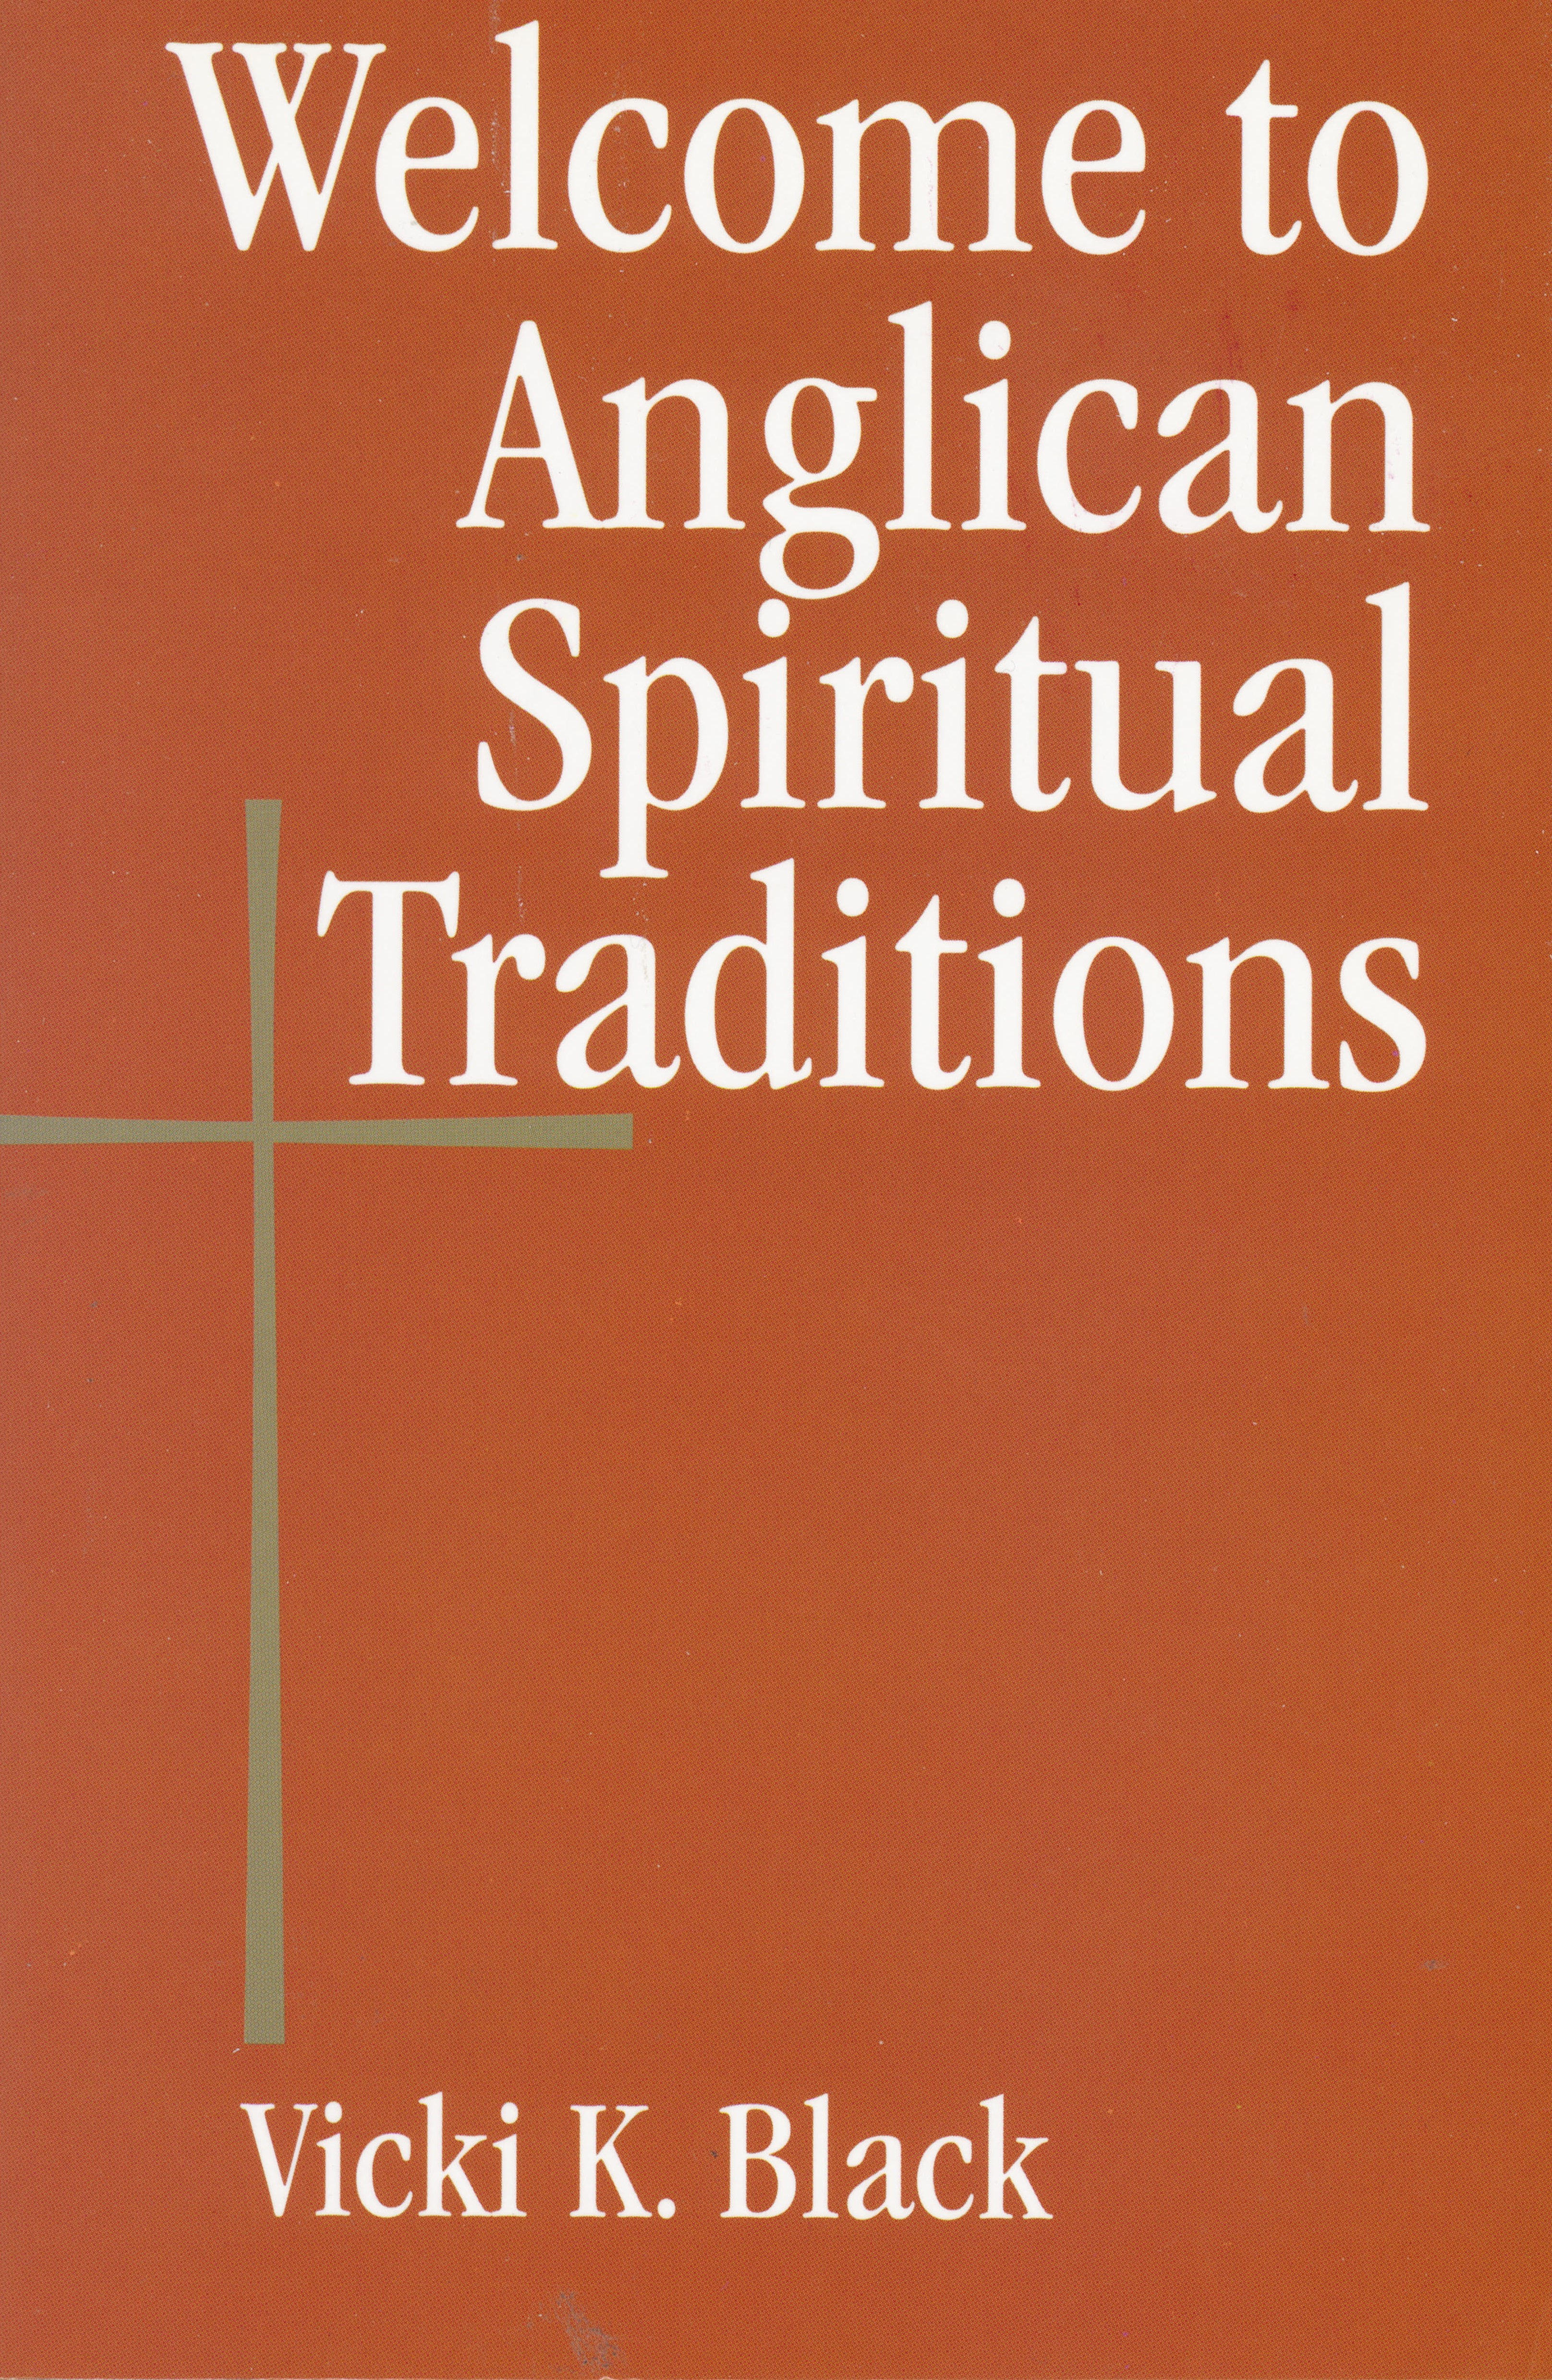 Welcome to Anglican Spiritual Traditions (Welcome to the Episcopal Church) by Vicki K. Black 108-9780819223685